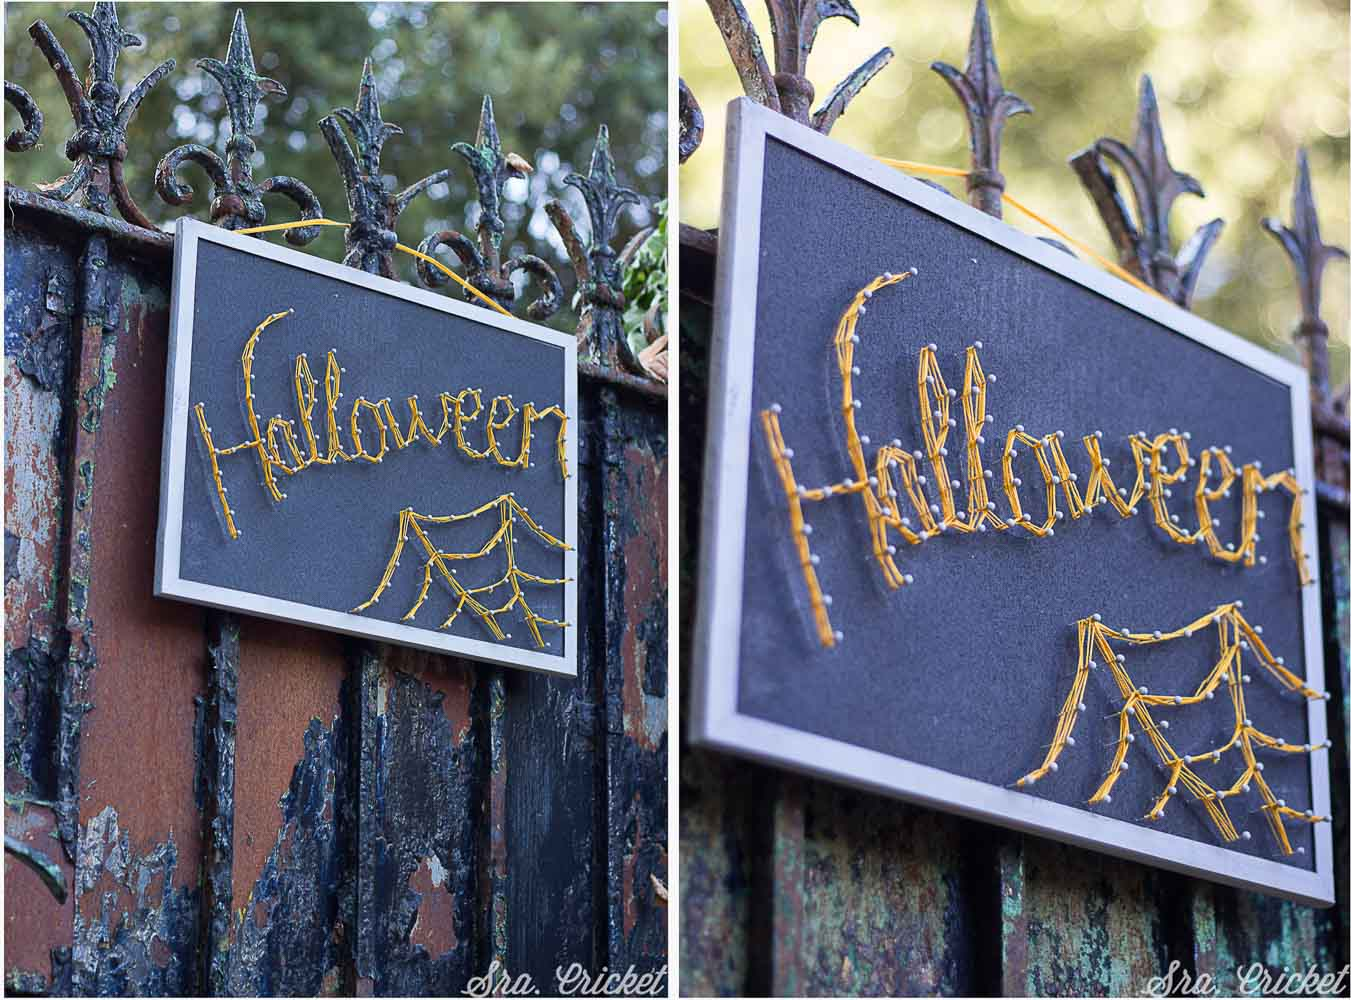 hilorama halloween string art